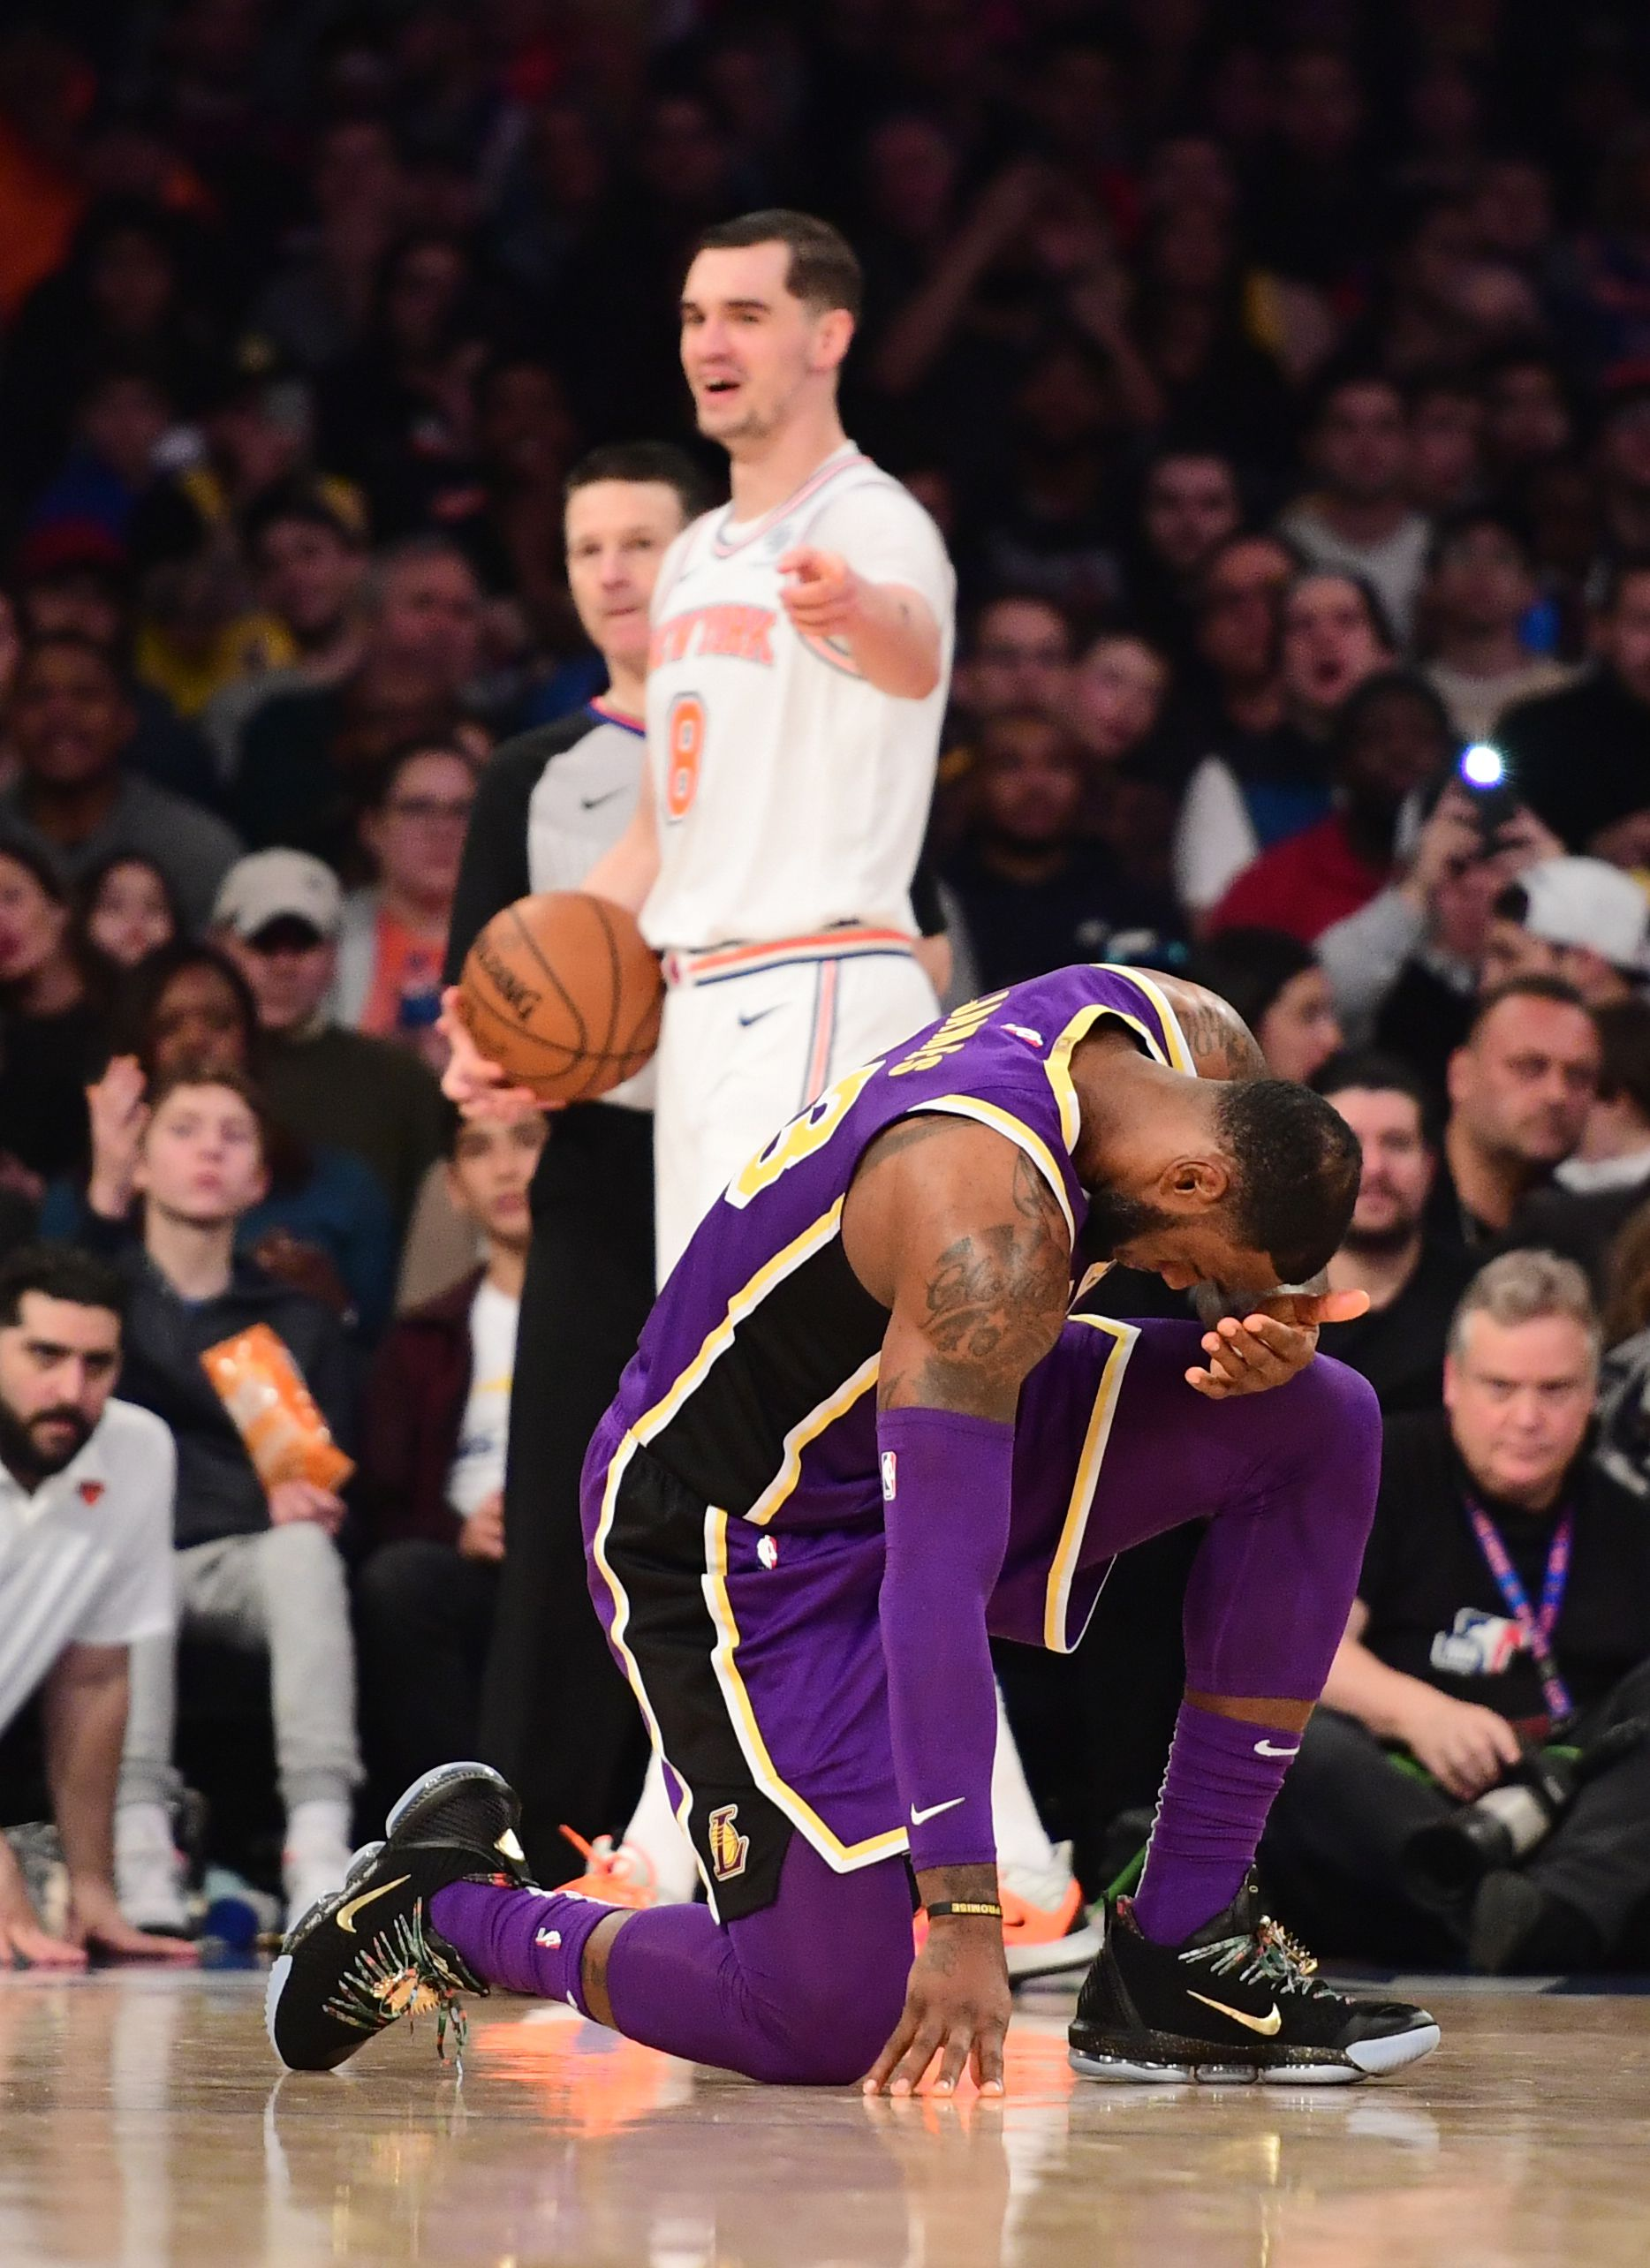 LeBron James kneeling, Mario Hezonja laughing at him